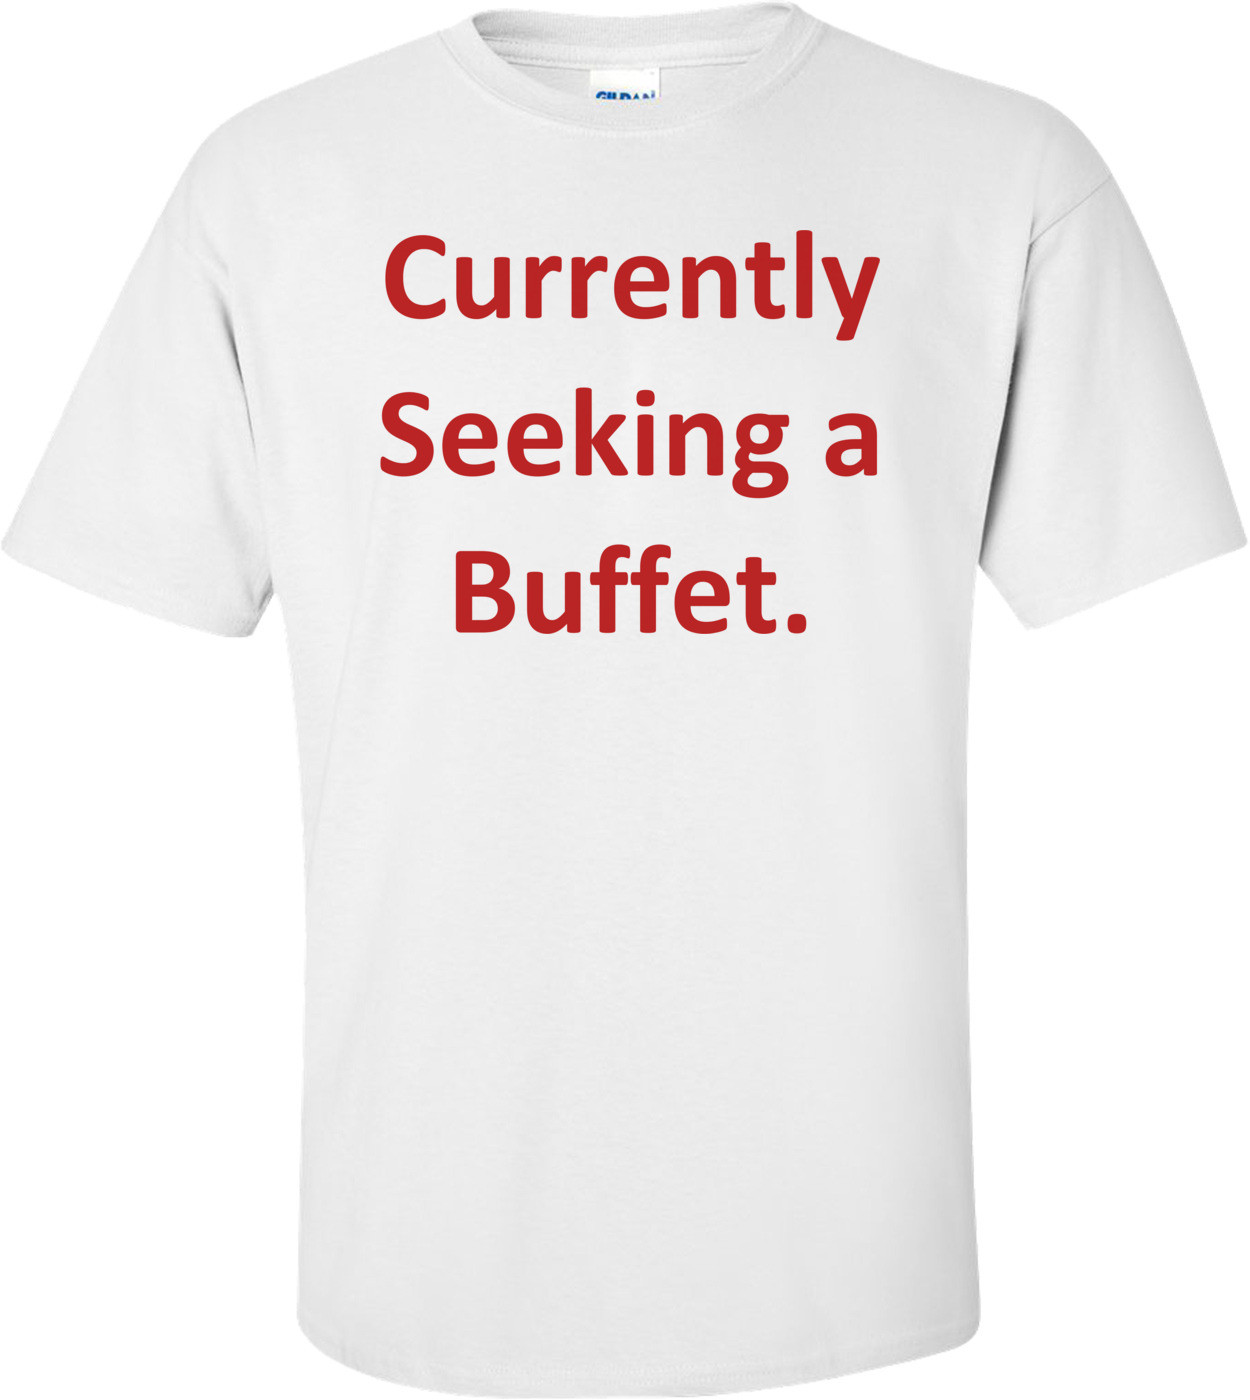 Currently Seeking a Buffet. Shirt